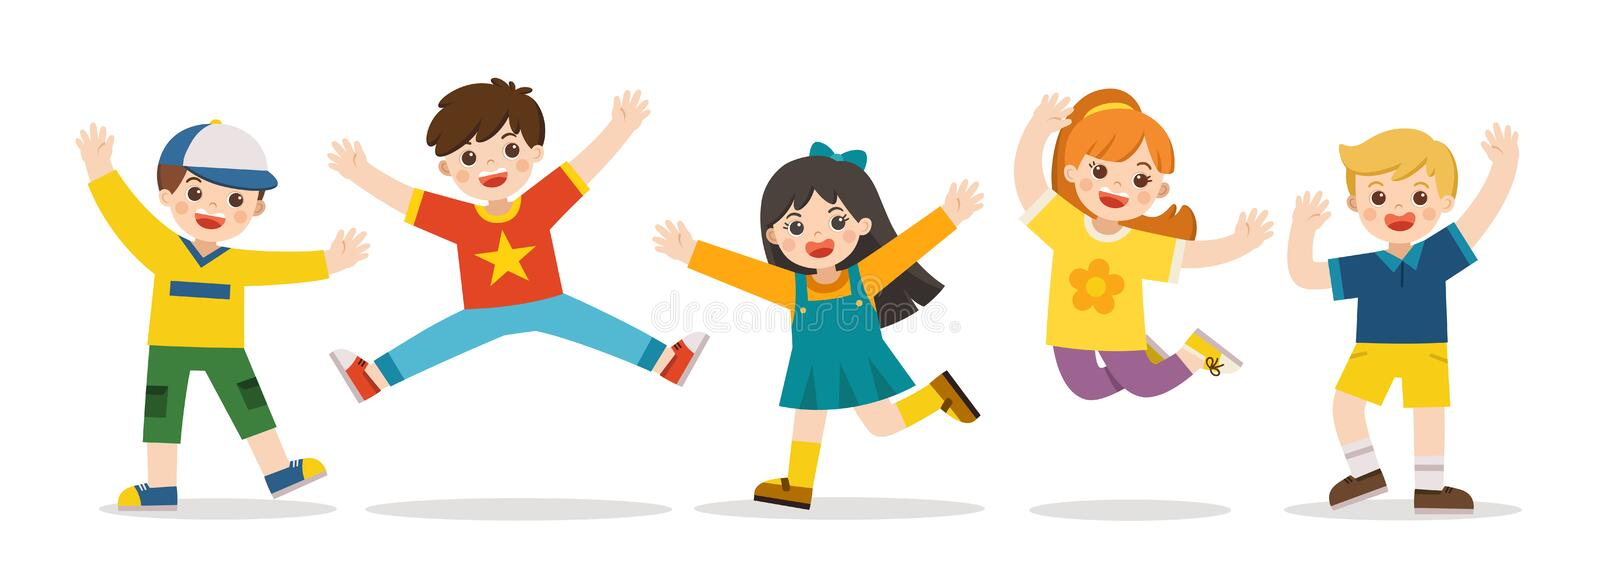 Children`s activities. Happy kids jumping together on the background. Boys and girls are playing together happily. stock illustration